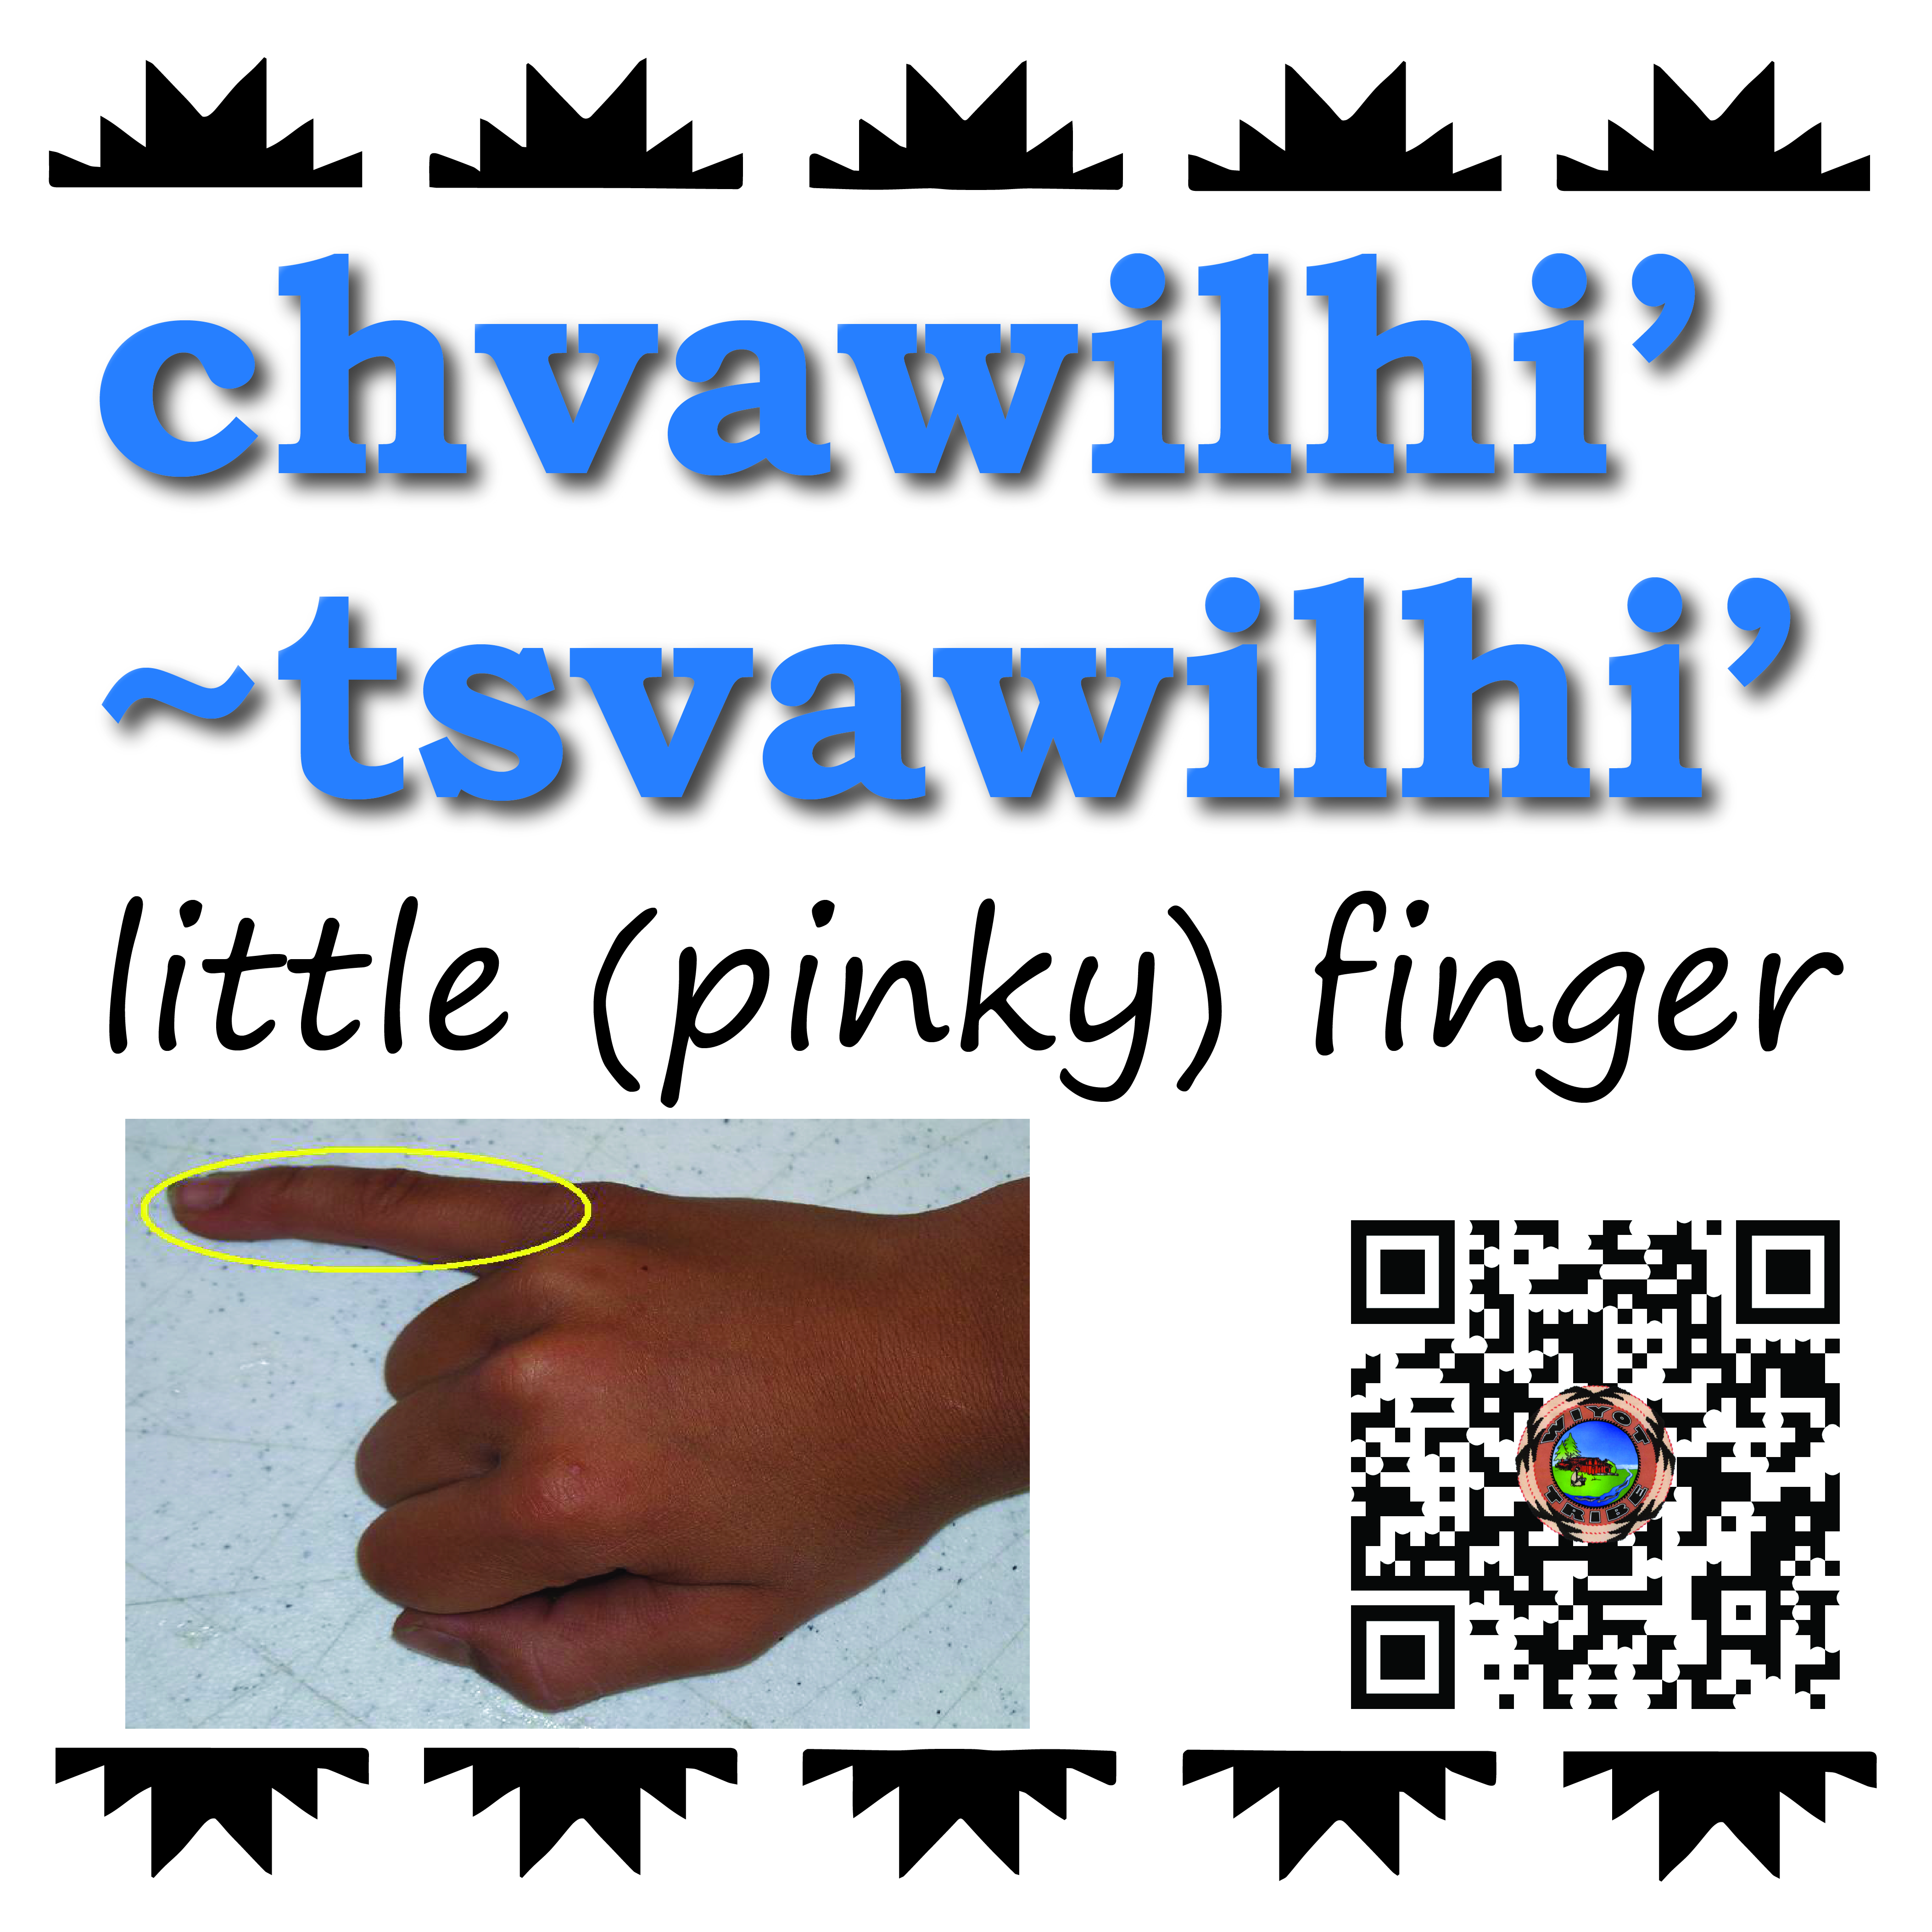 chvawilhi_tsvawilhi_little_pinky_finger_toe